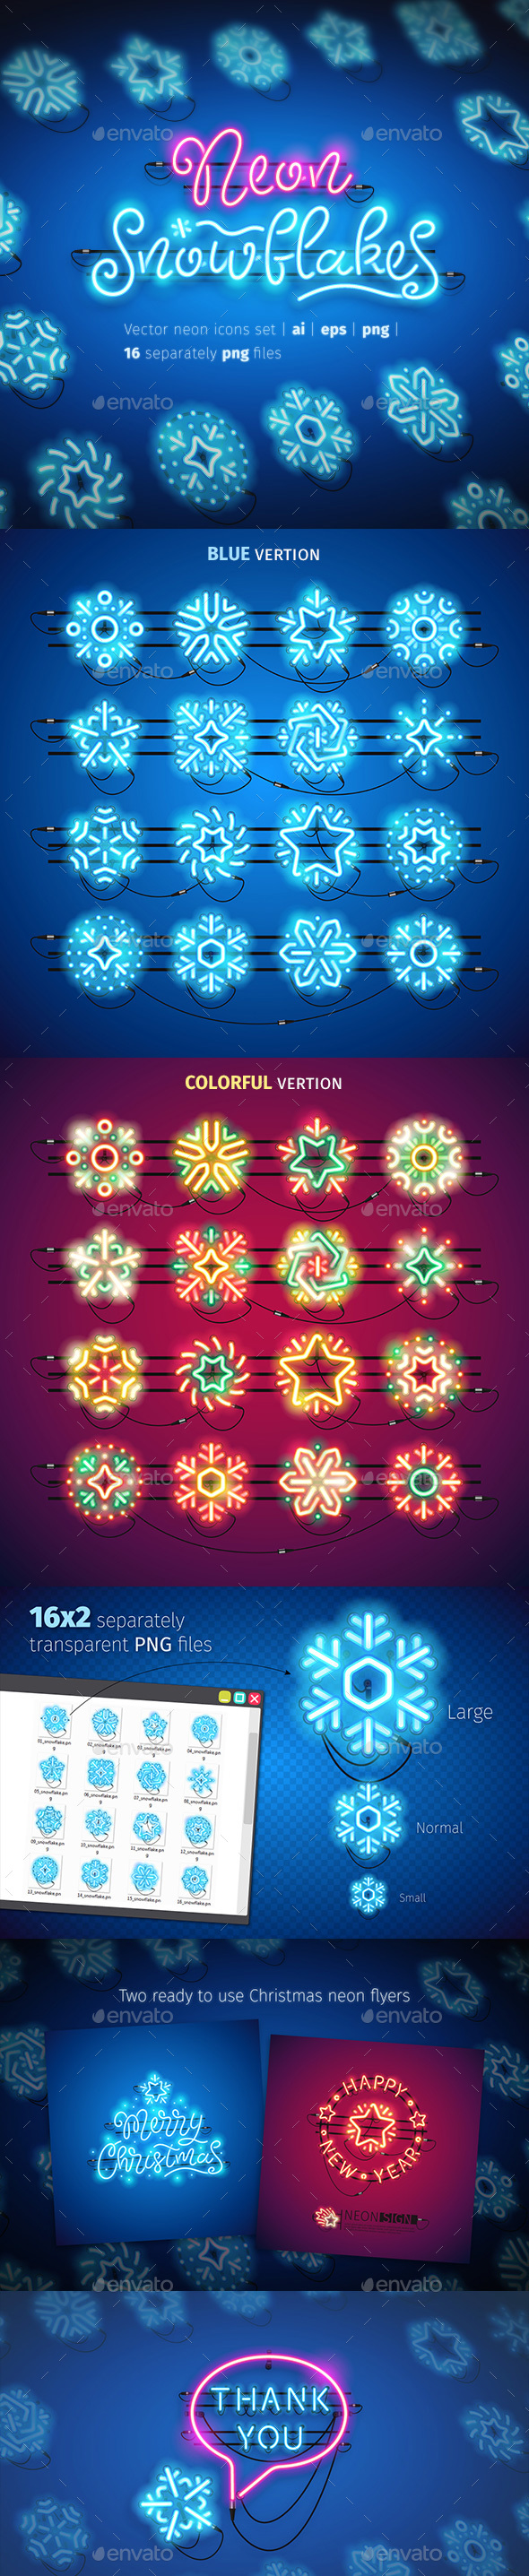 Christmas Colorful Neon Snowflakes Icons - Seasonal Icons